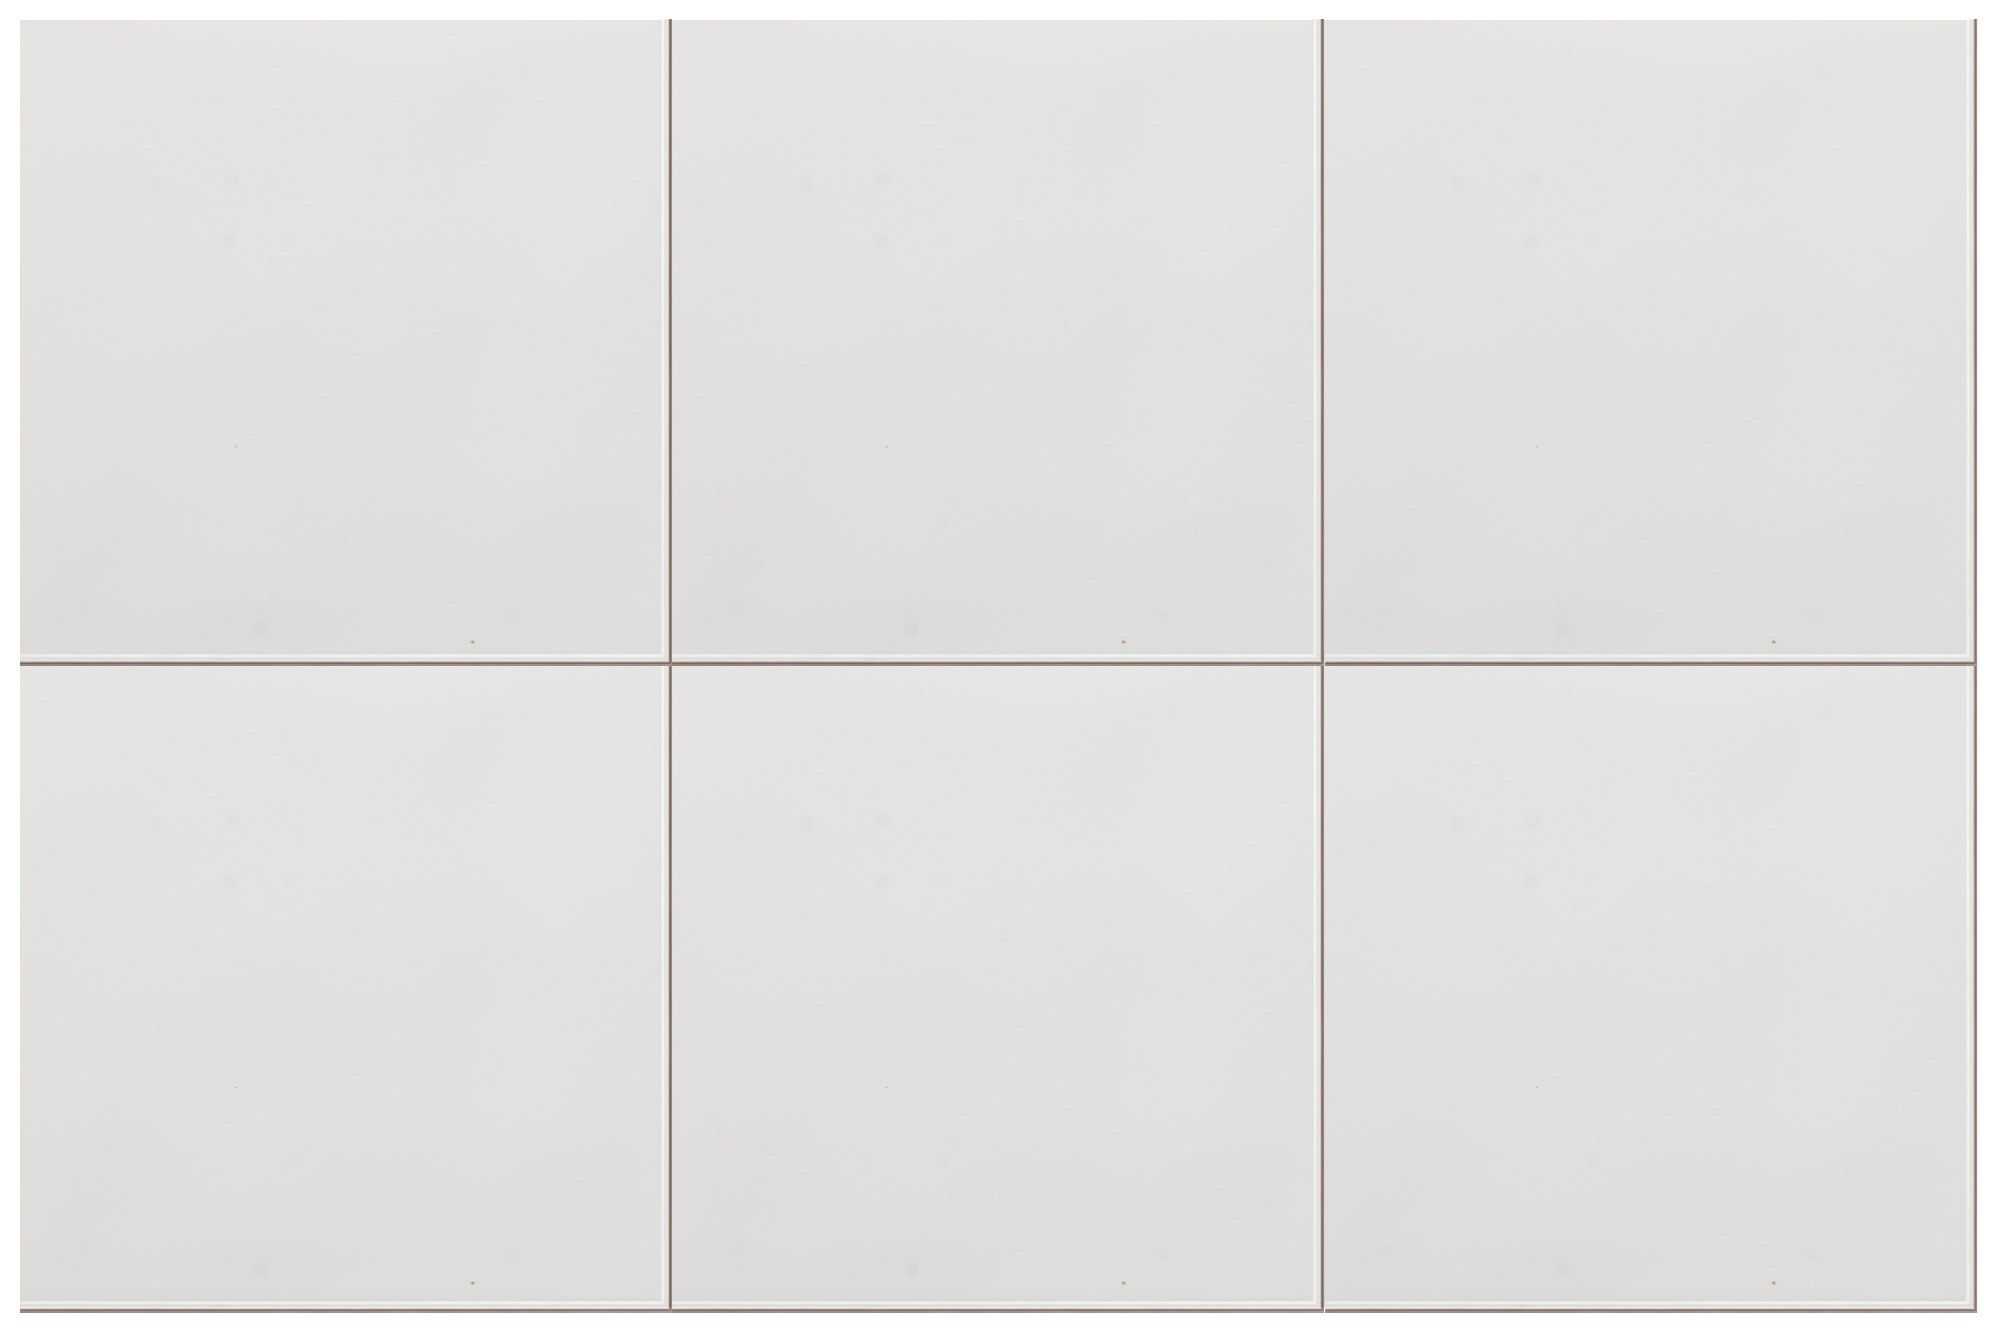 Bumpy White Tiles Pack - 20x20cm